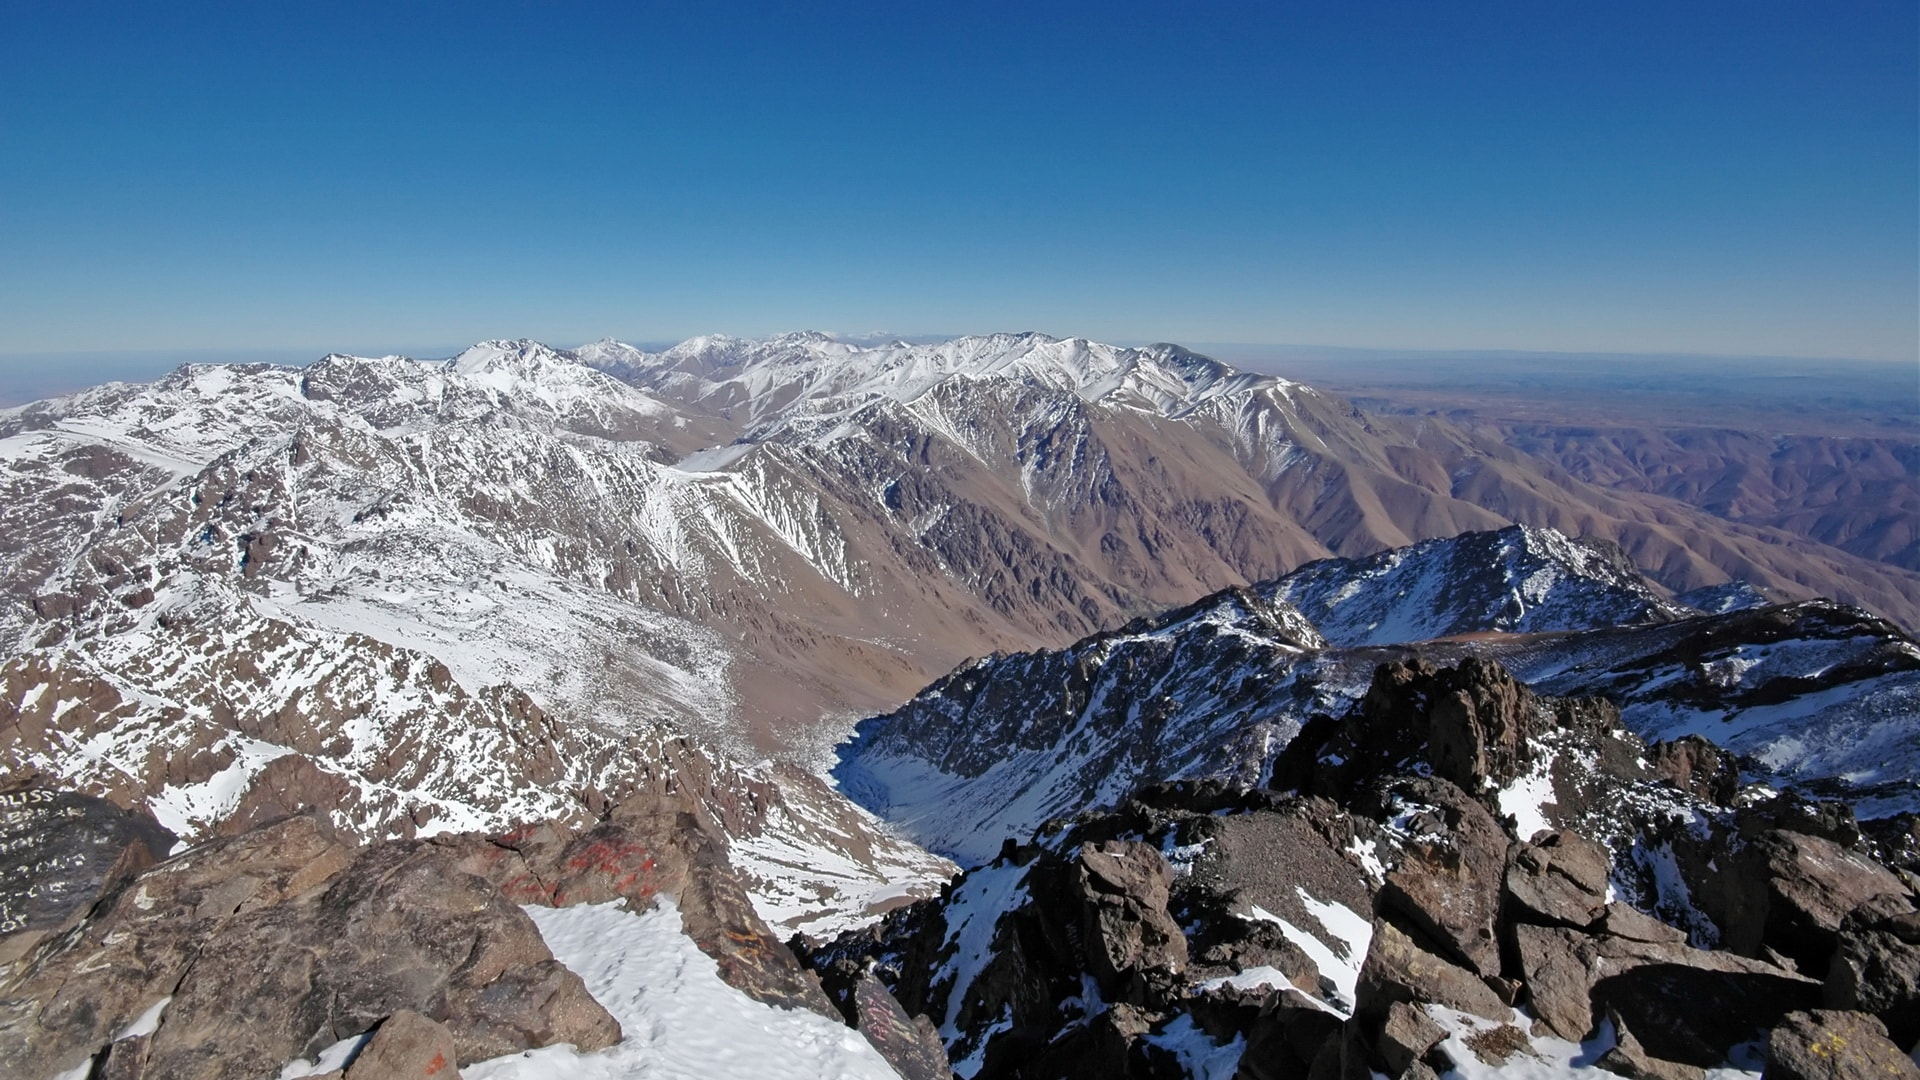 pathfinders treks - mt toubkal circuit 6 days